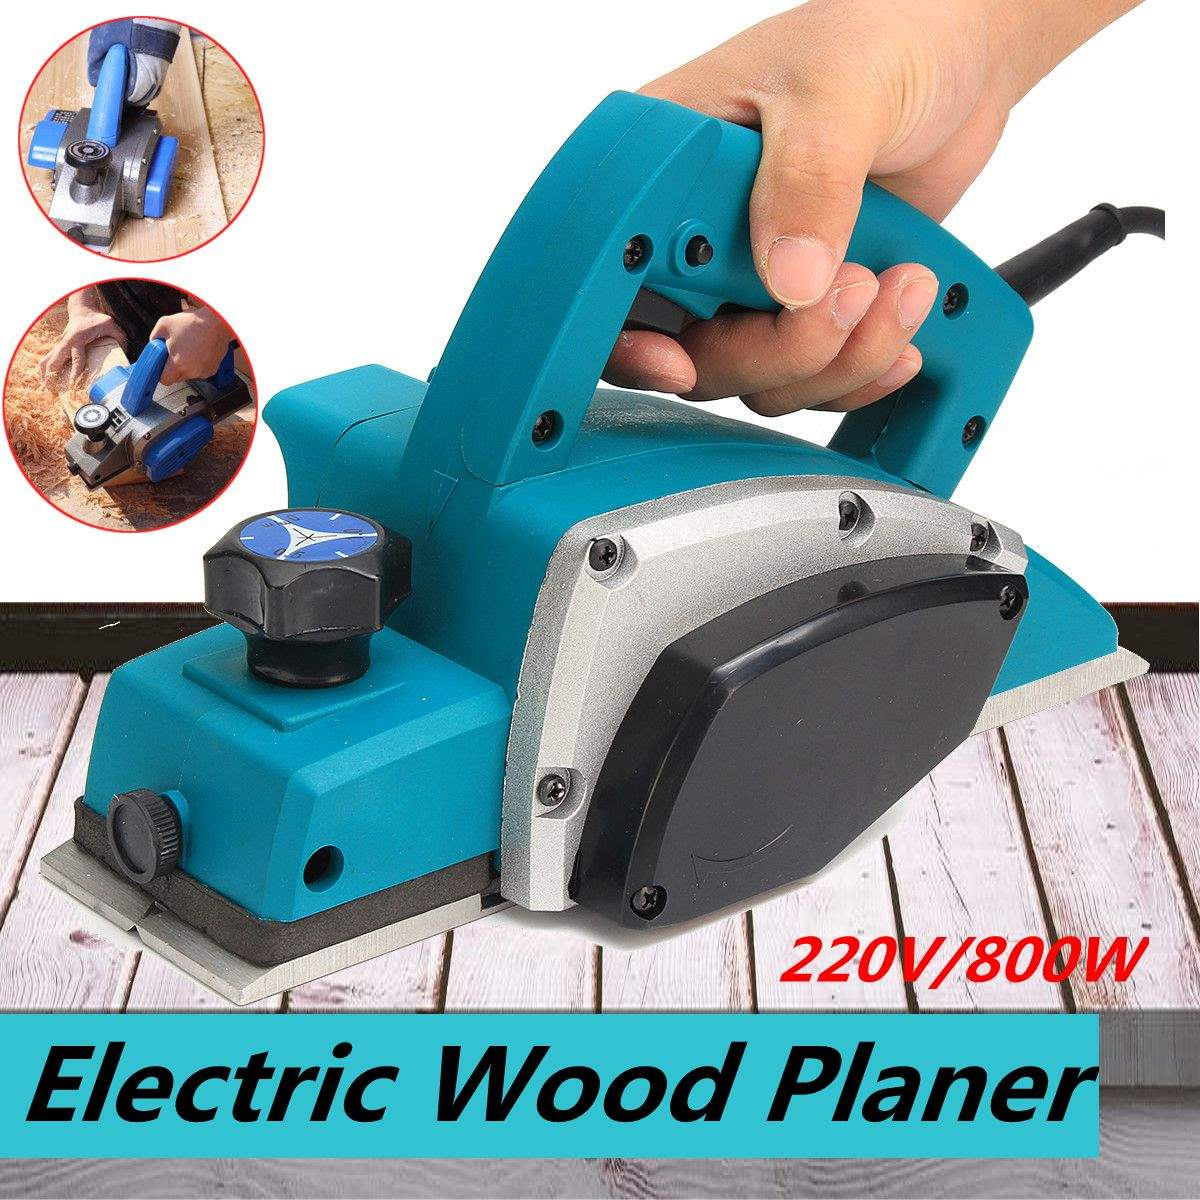 Powerful Electric Wood Planer Door Plane Hand Held Heavy Duty 220V 800W Woodworking Power Tool Surface for Wood Processing цена и фото